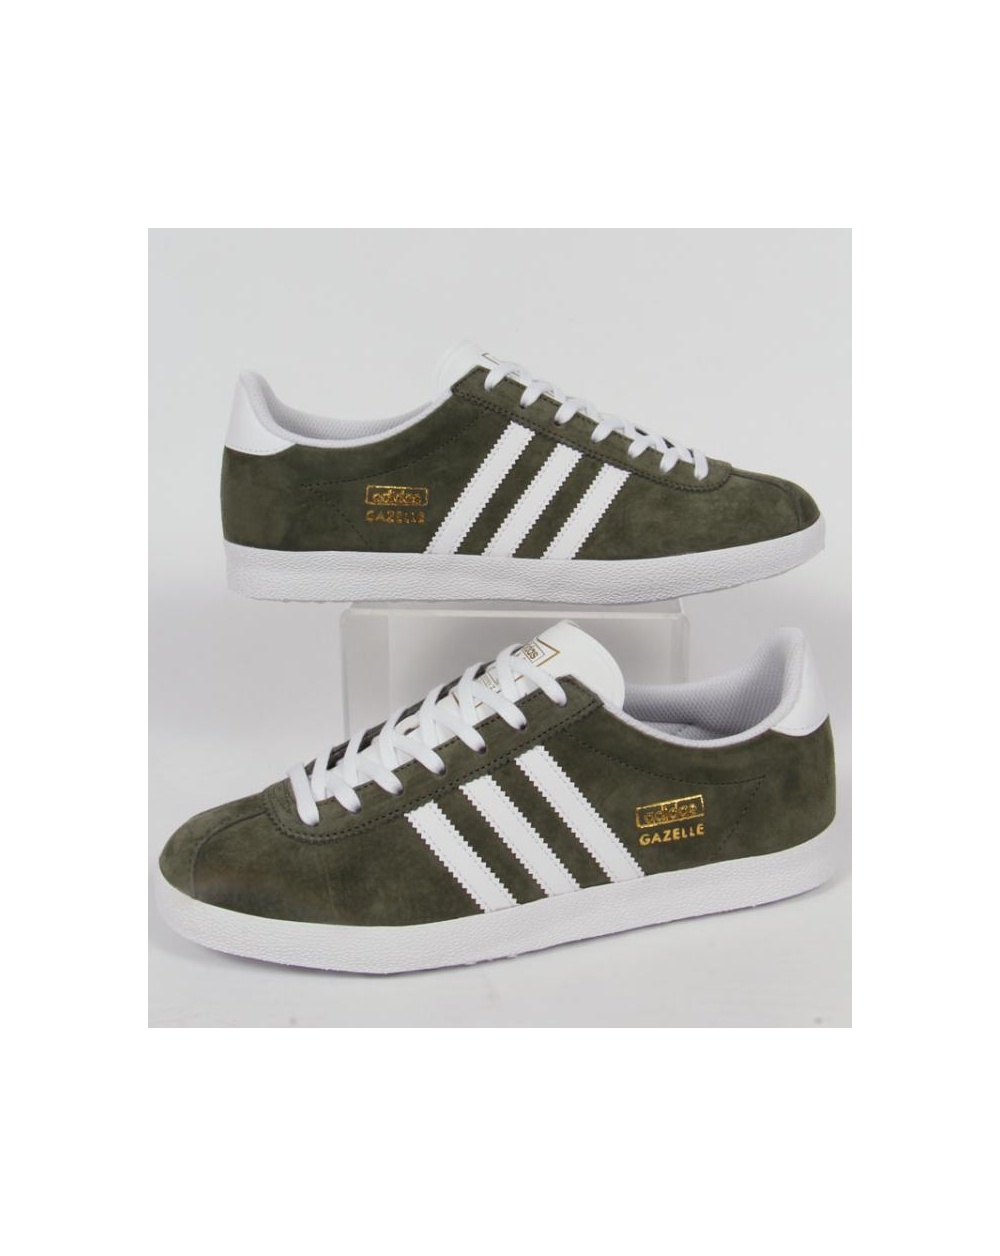 timeless design 6b37e 44a51 adidas Trainers Adidas Gazelle OG Trainers Base GreenWhite